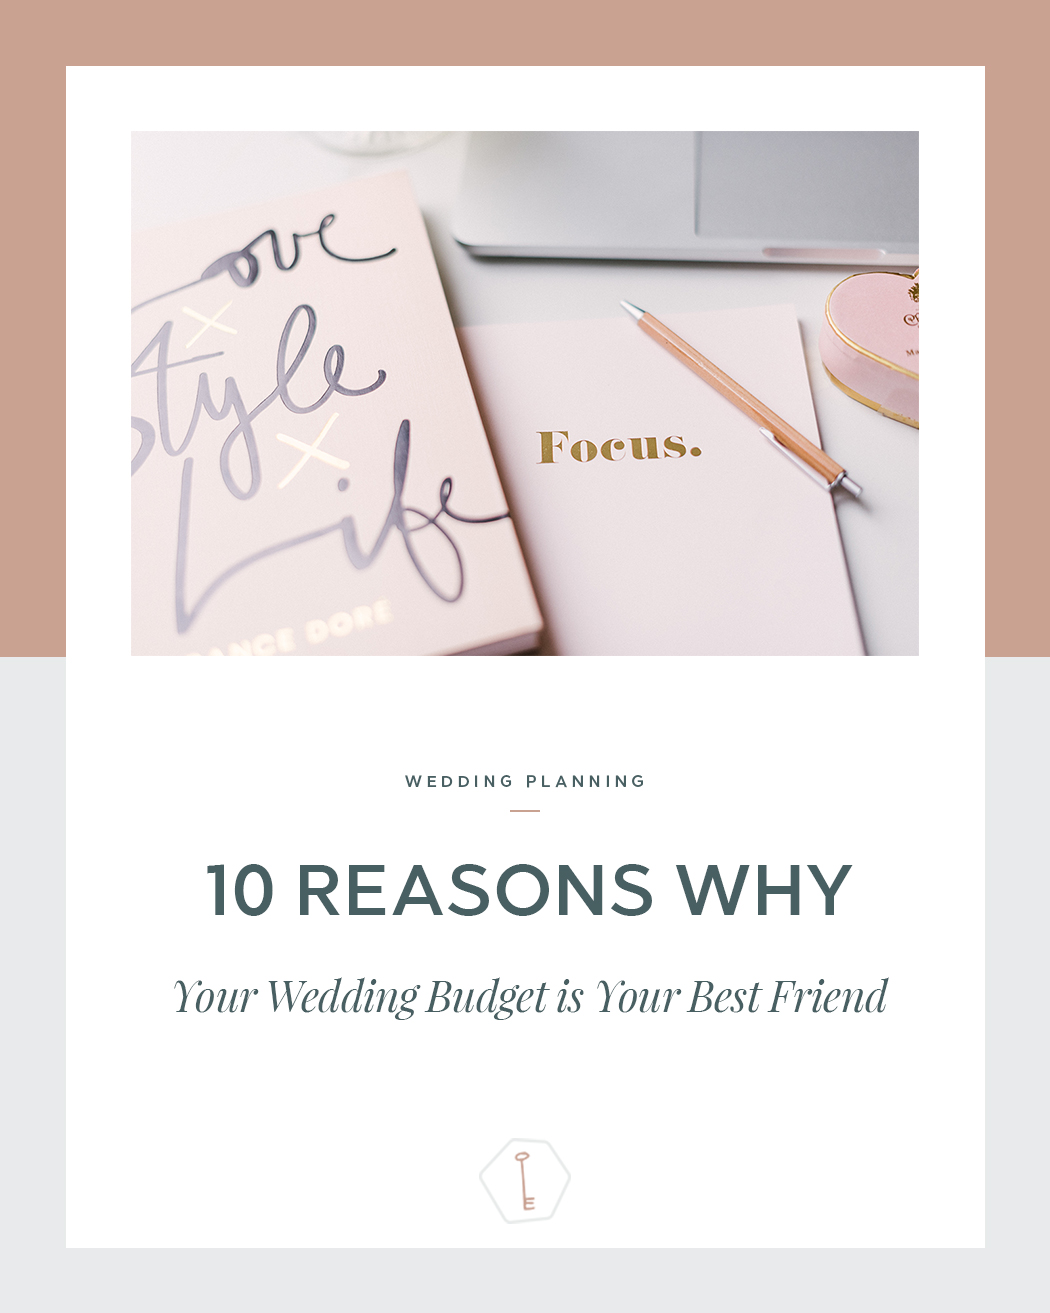 10 Reasons Why Your Wedding Budget Is Your Best Friend